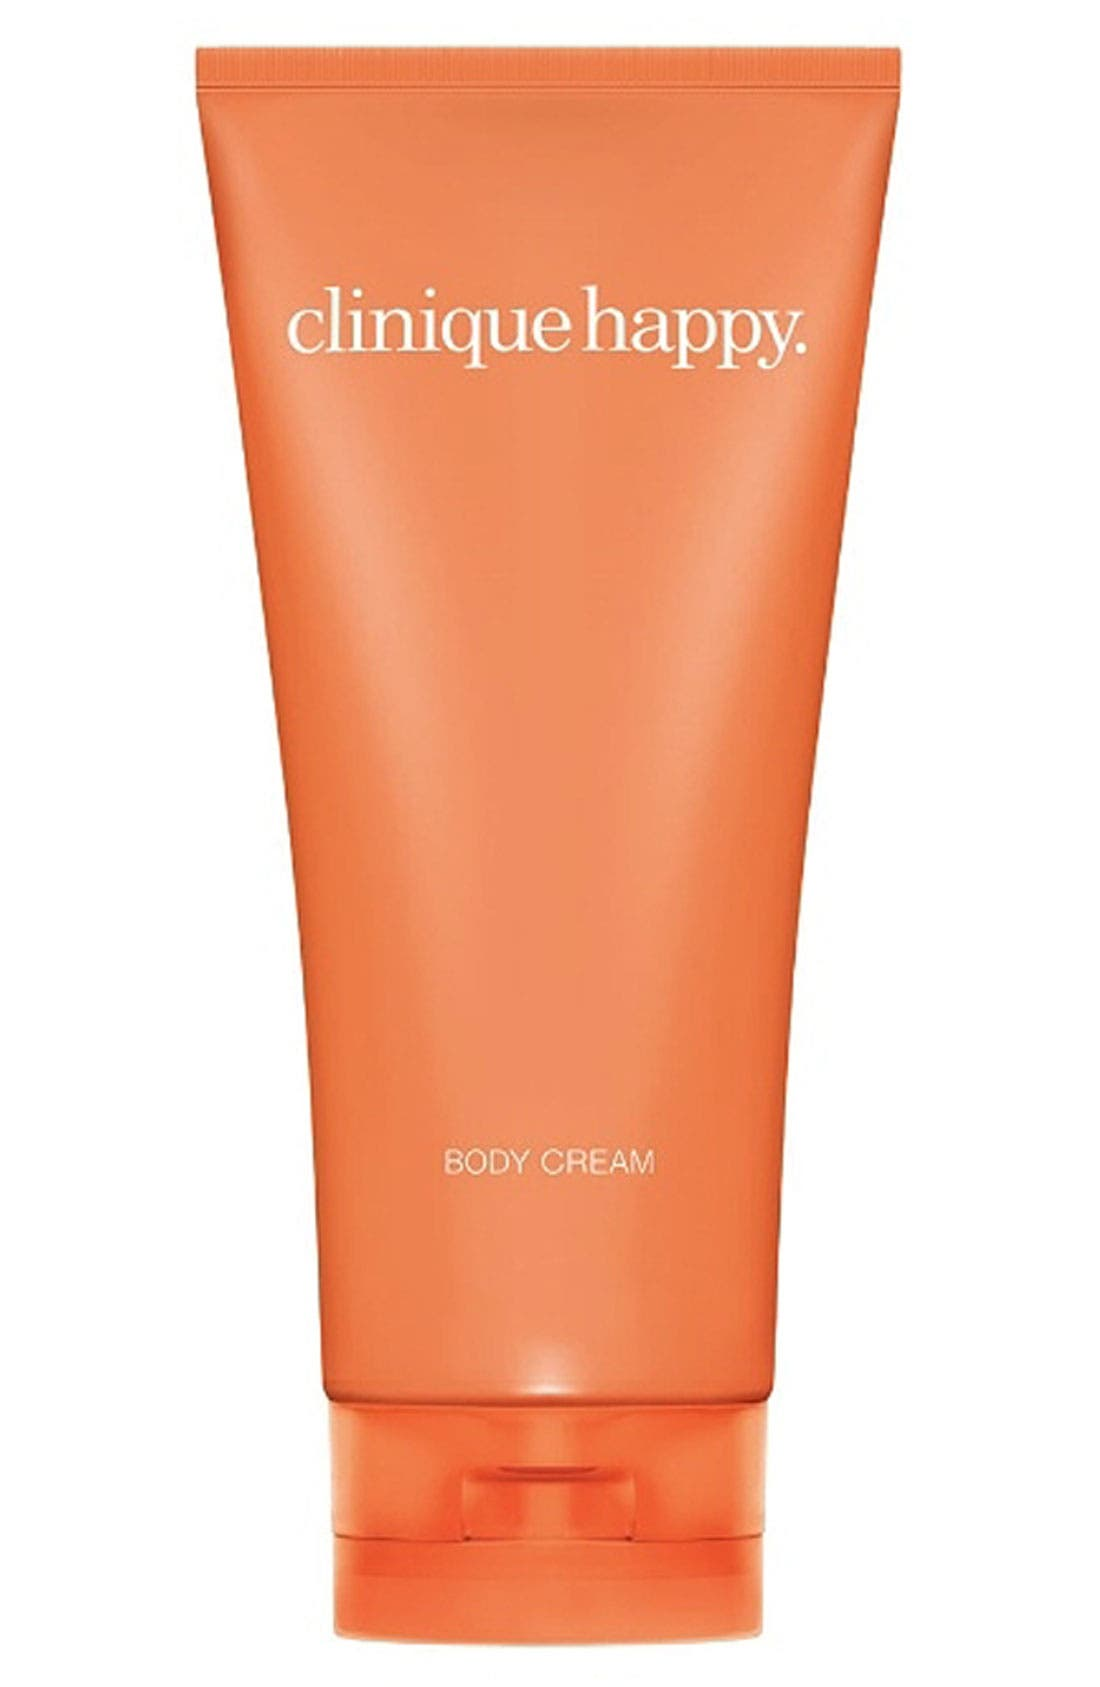 Clinique 'Happy' Body Cream